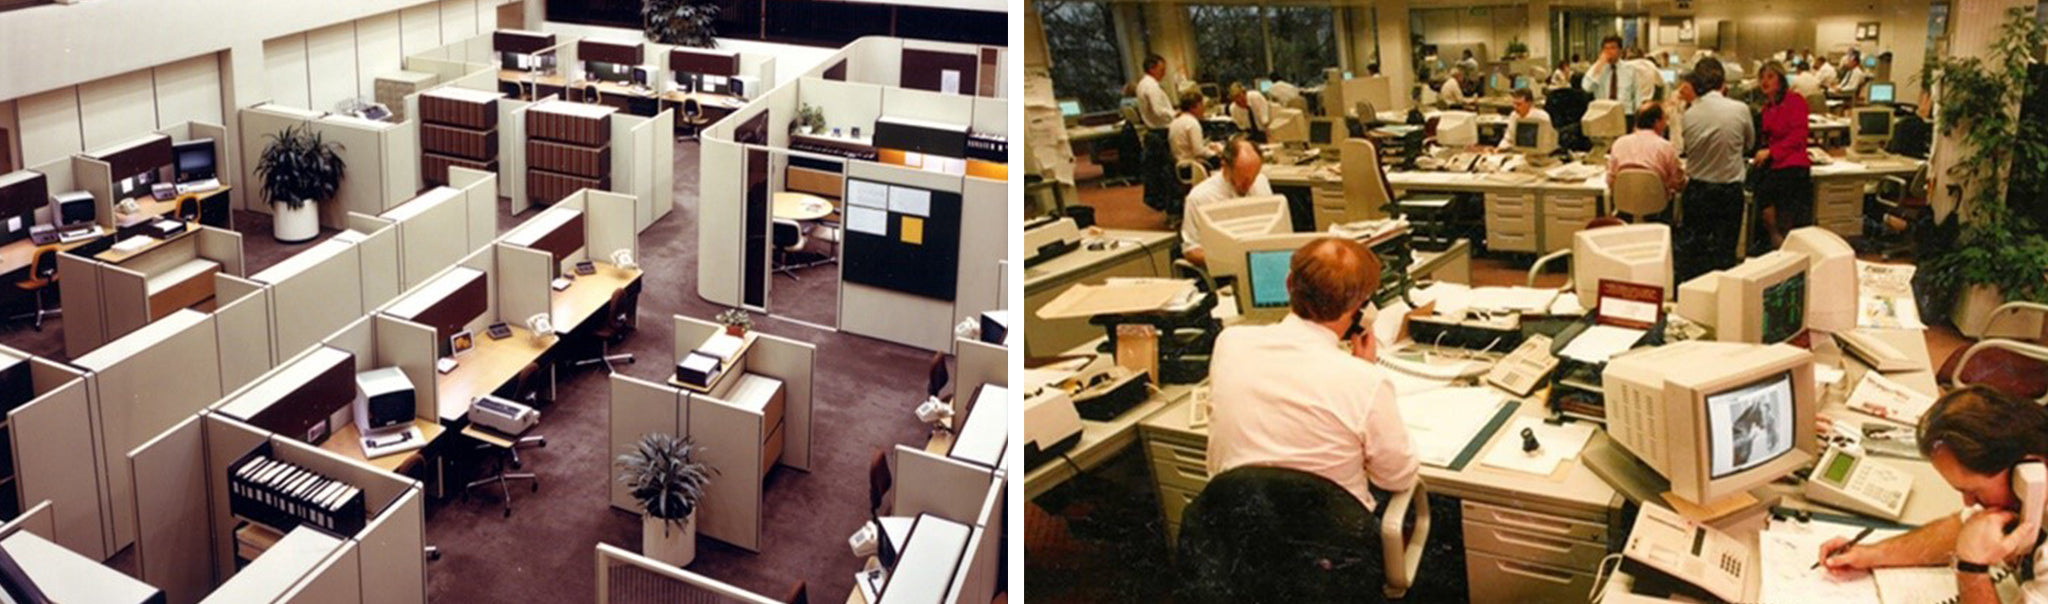 Closed and Open Office Plans in the 1980s-90s. (Image Credit: frovi.co.uk)